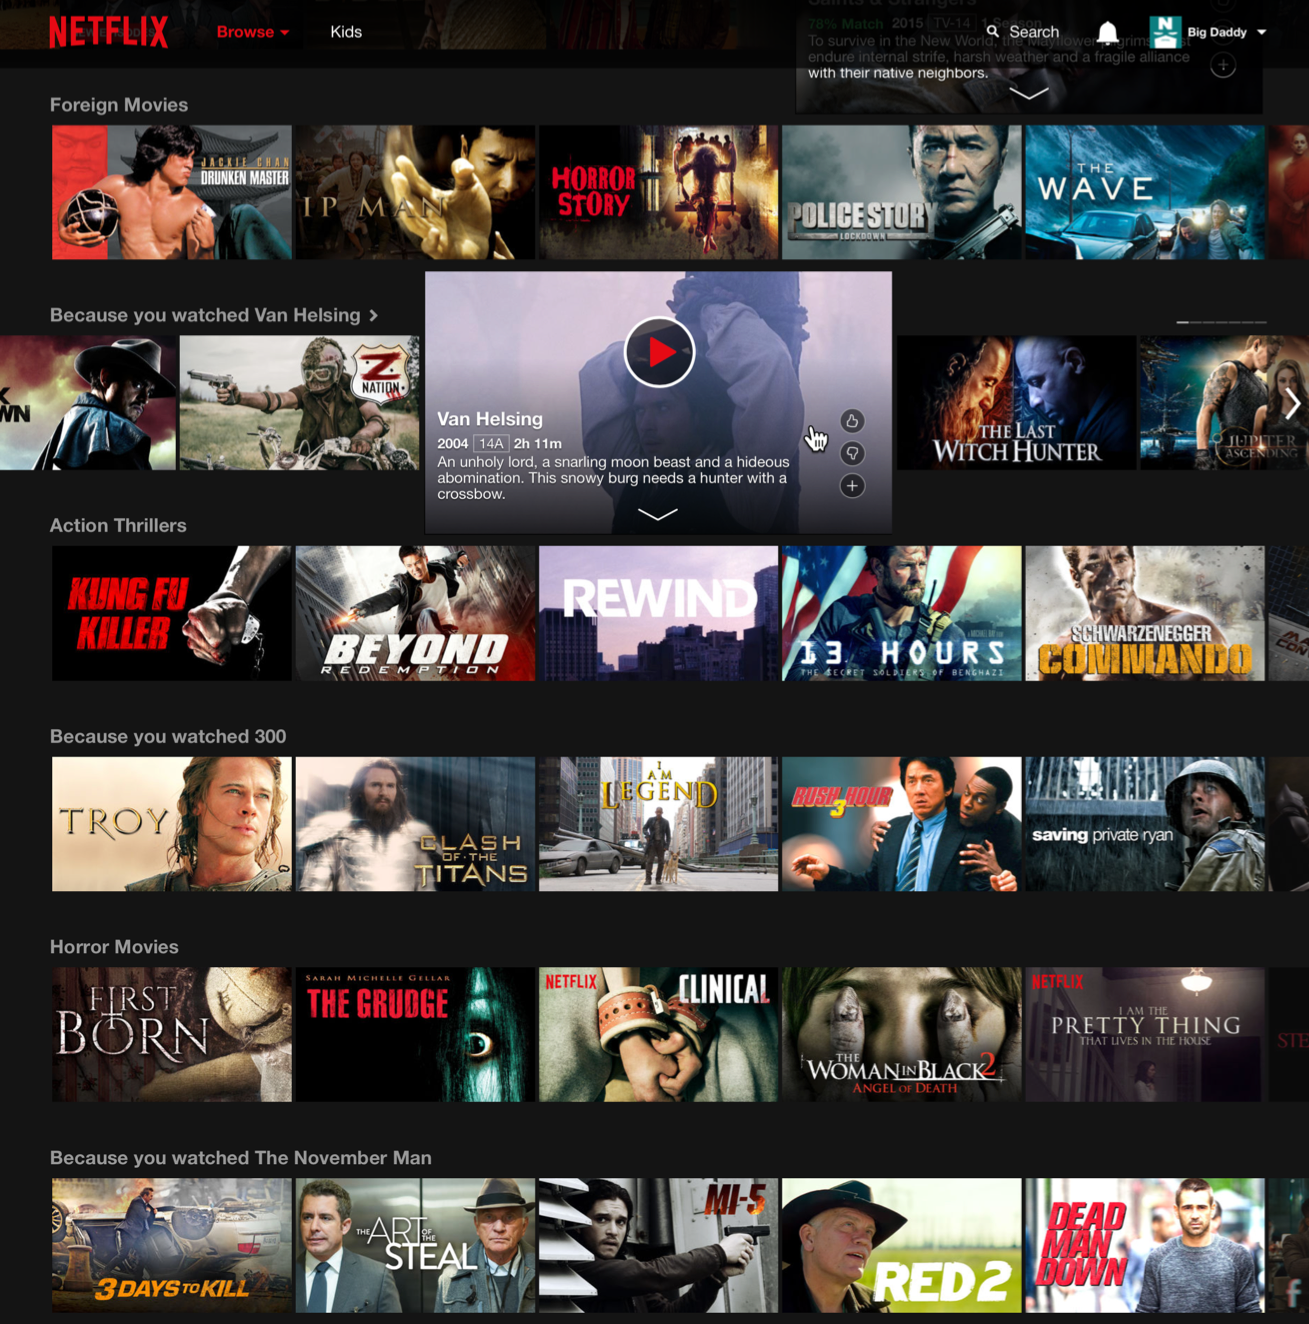 Netflix personalized recommendations